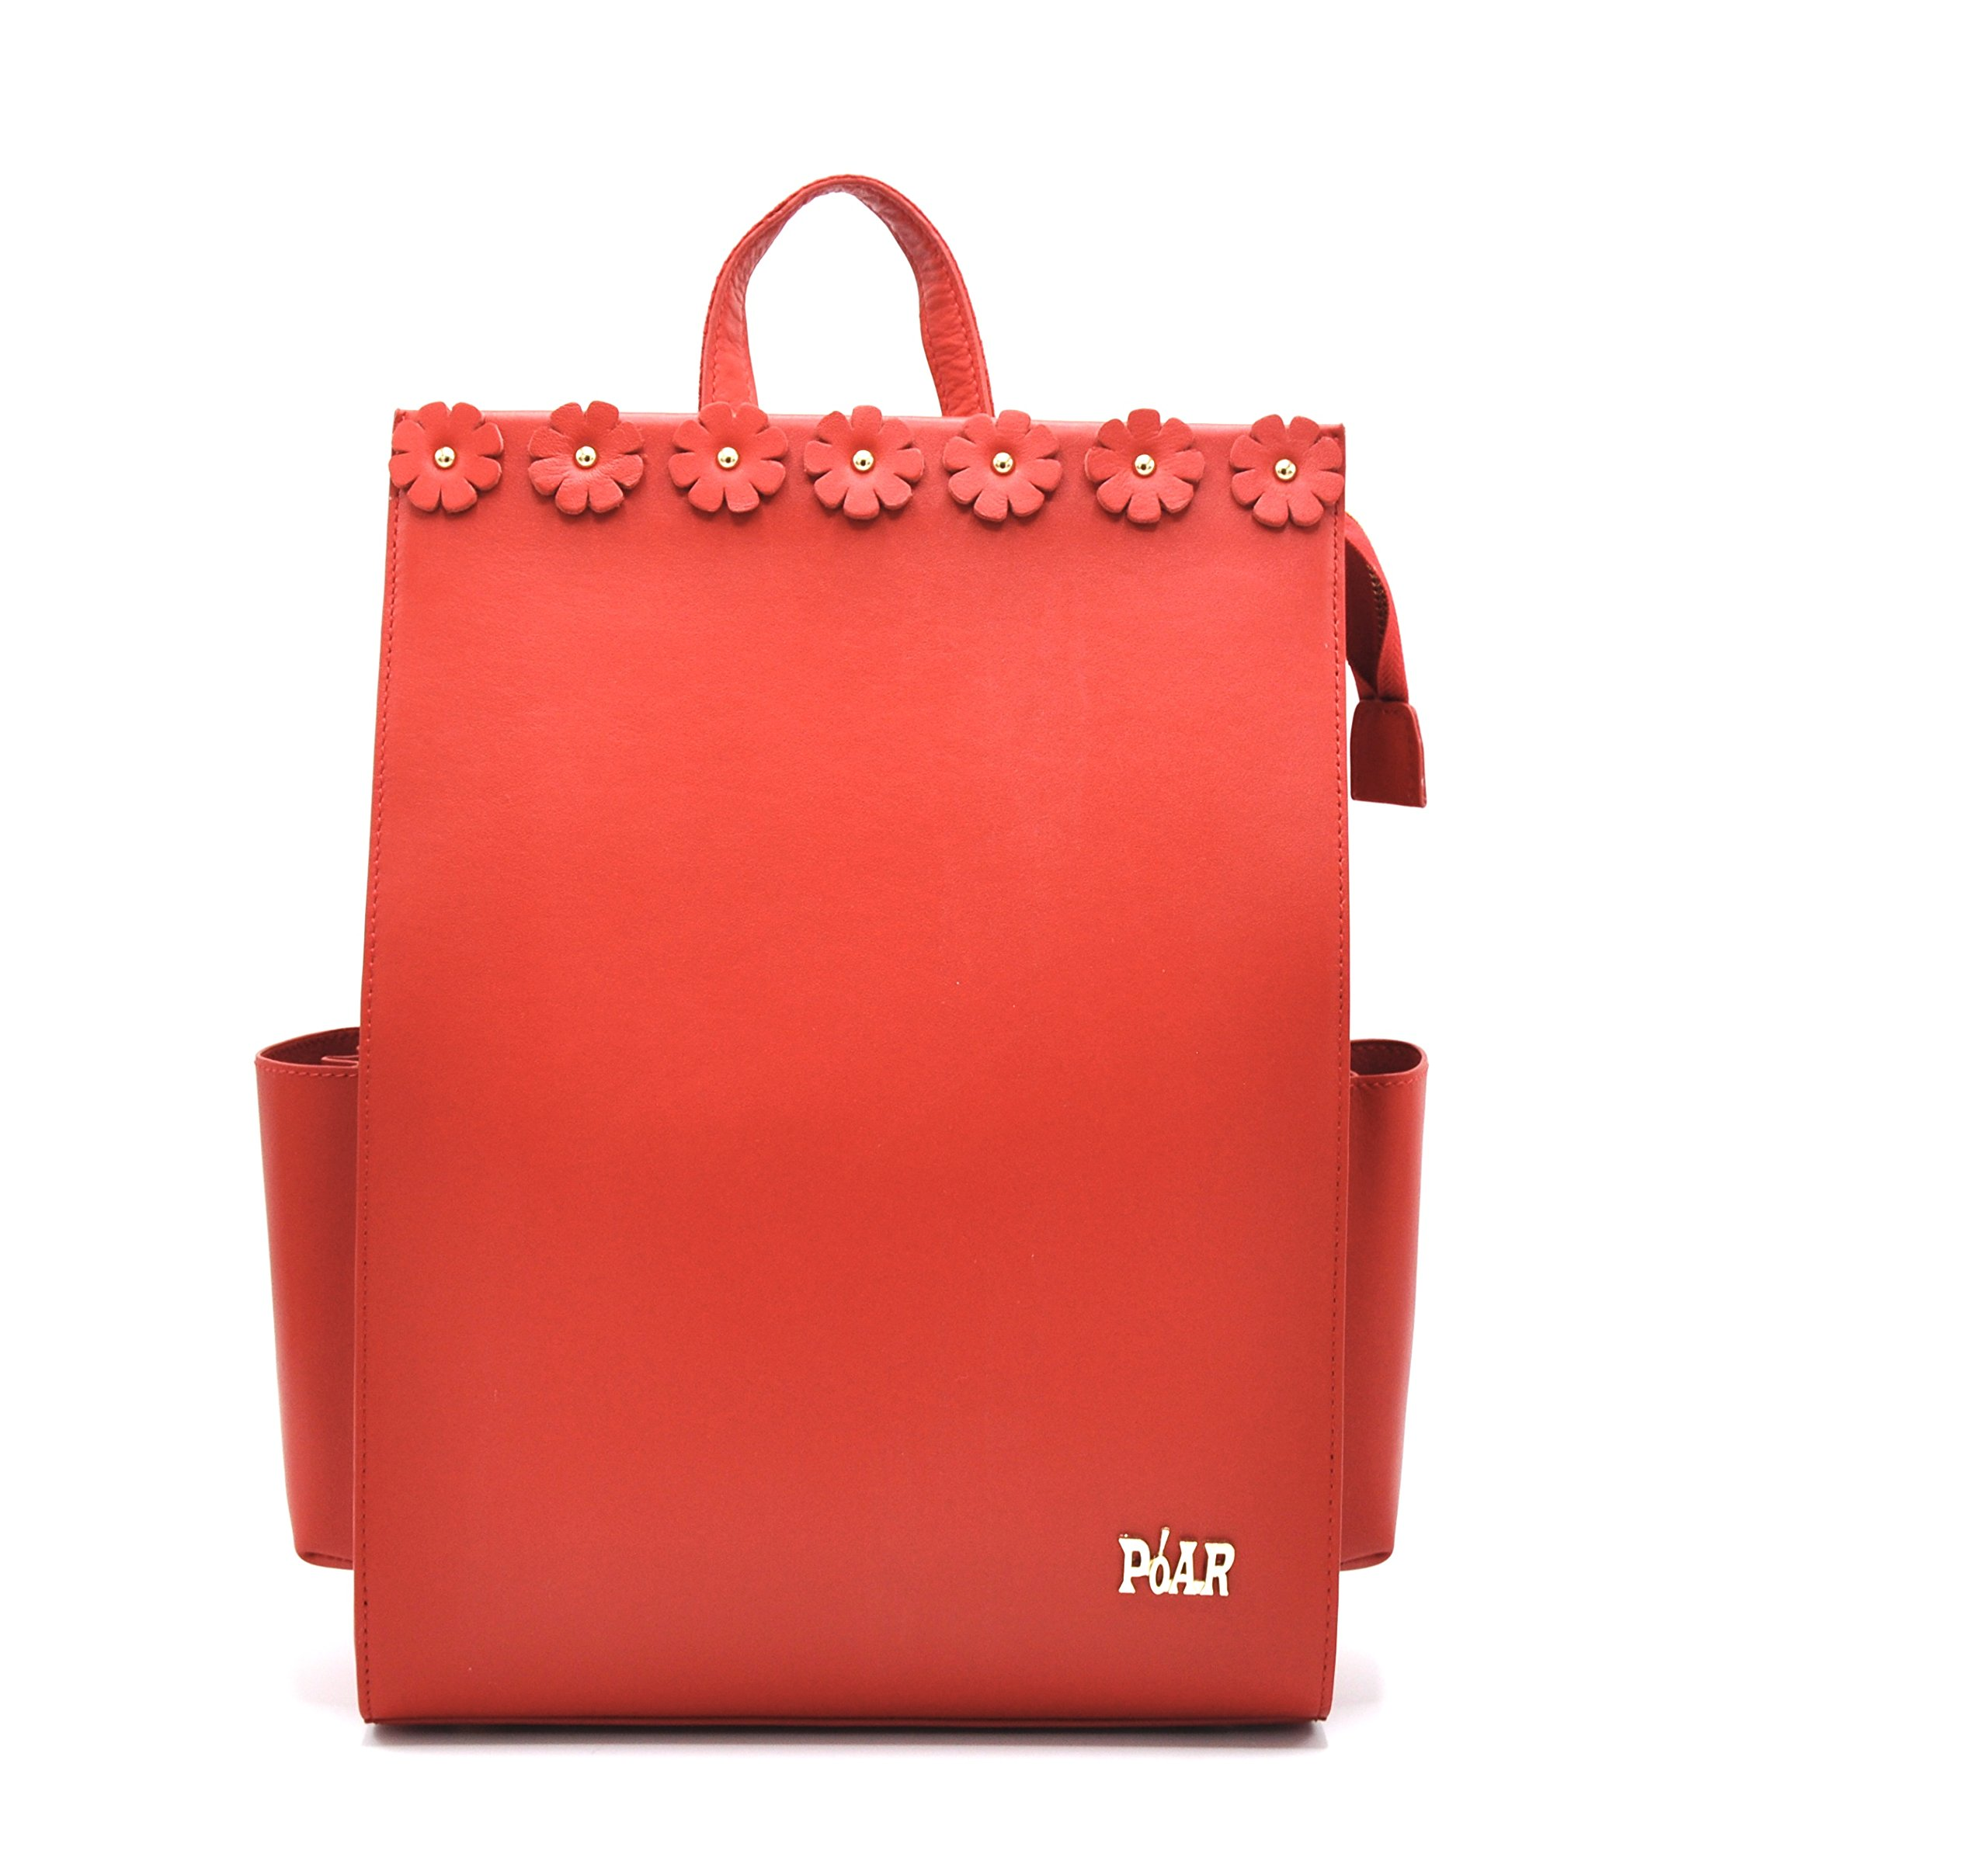 PóAR Commuter Women HandBag (Red-Flower) (RED) by PóAR